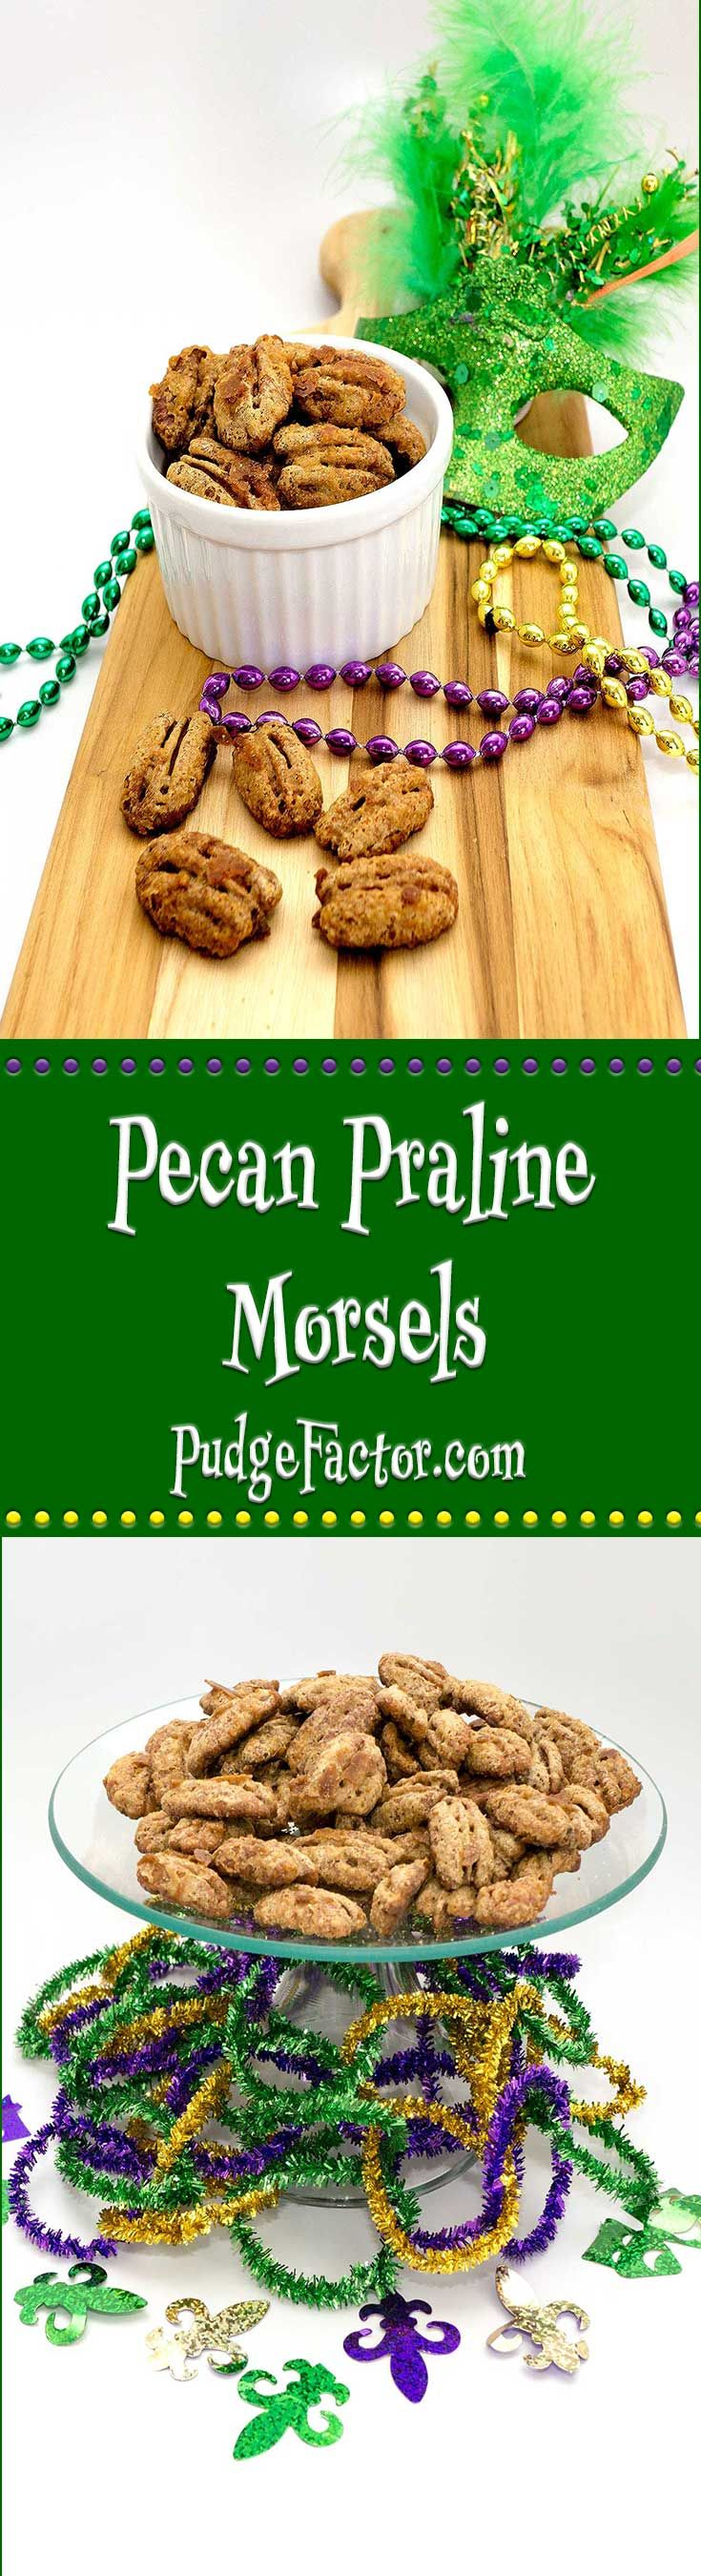 Pecan praline morsels combine pecans that are plentiful in the South with brown sugar and cream to produce an amazingly good candied nut!  via @c2king